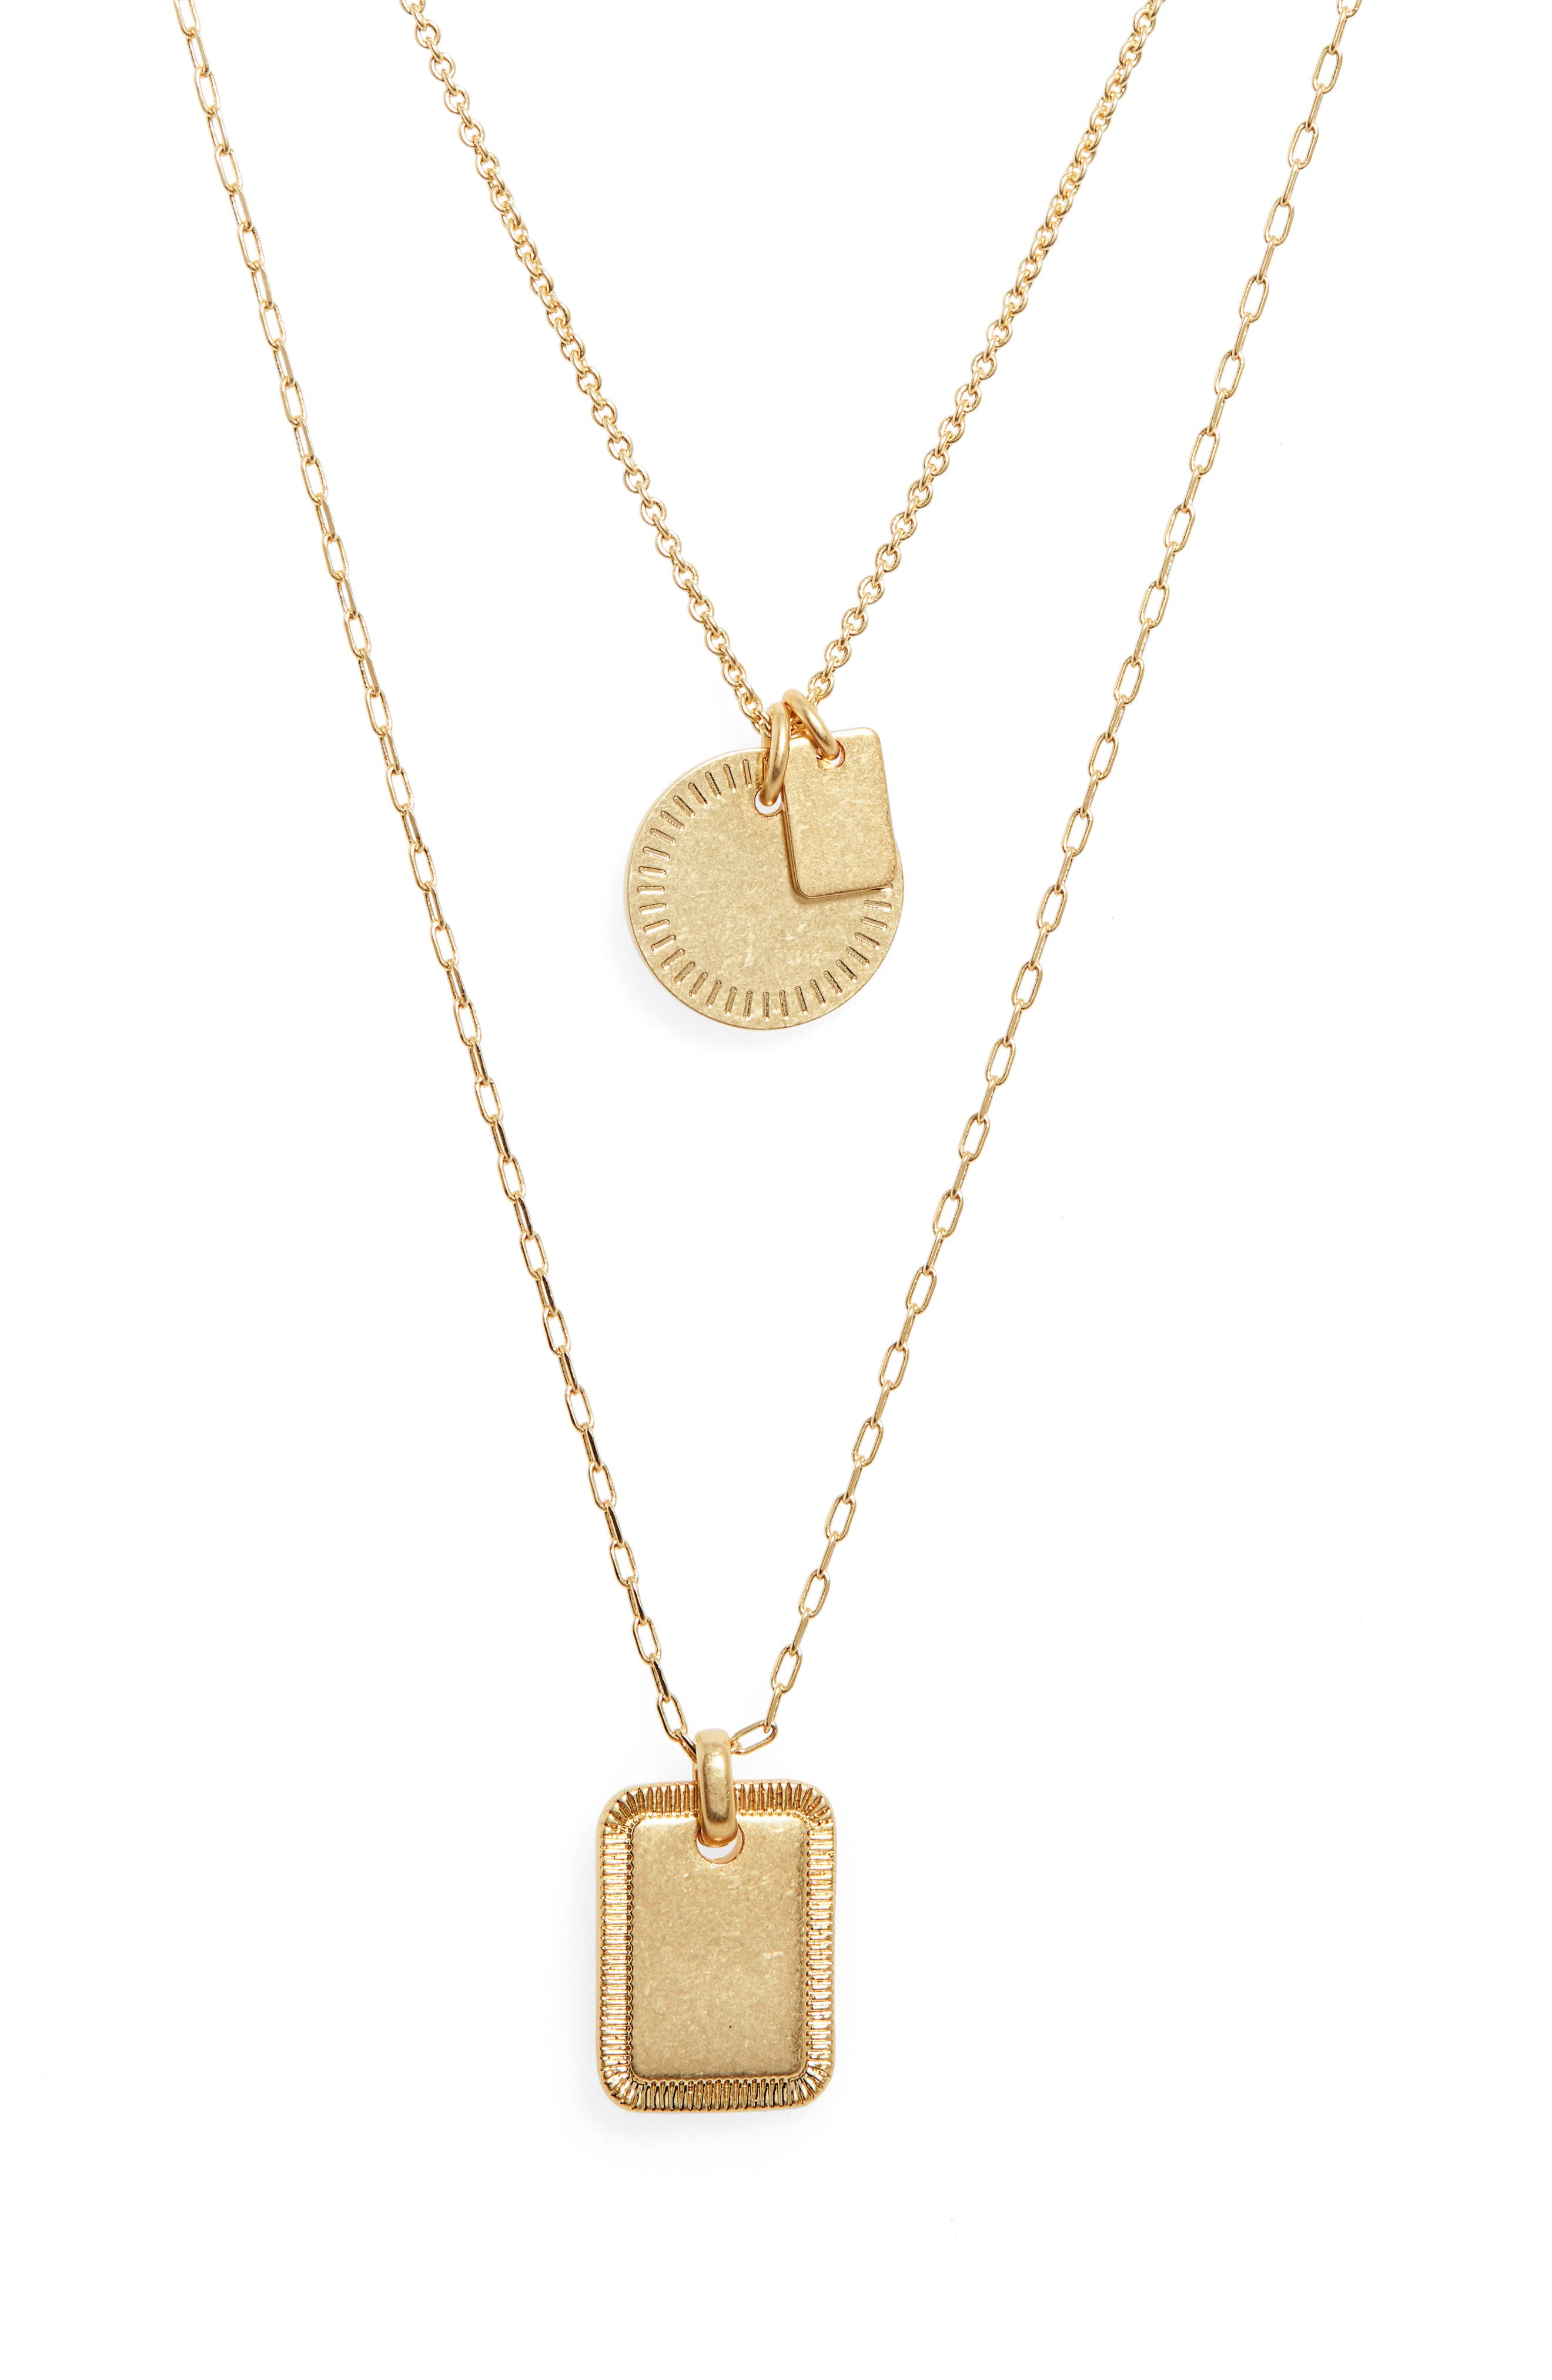 Etched Coin Necklace Set